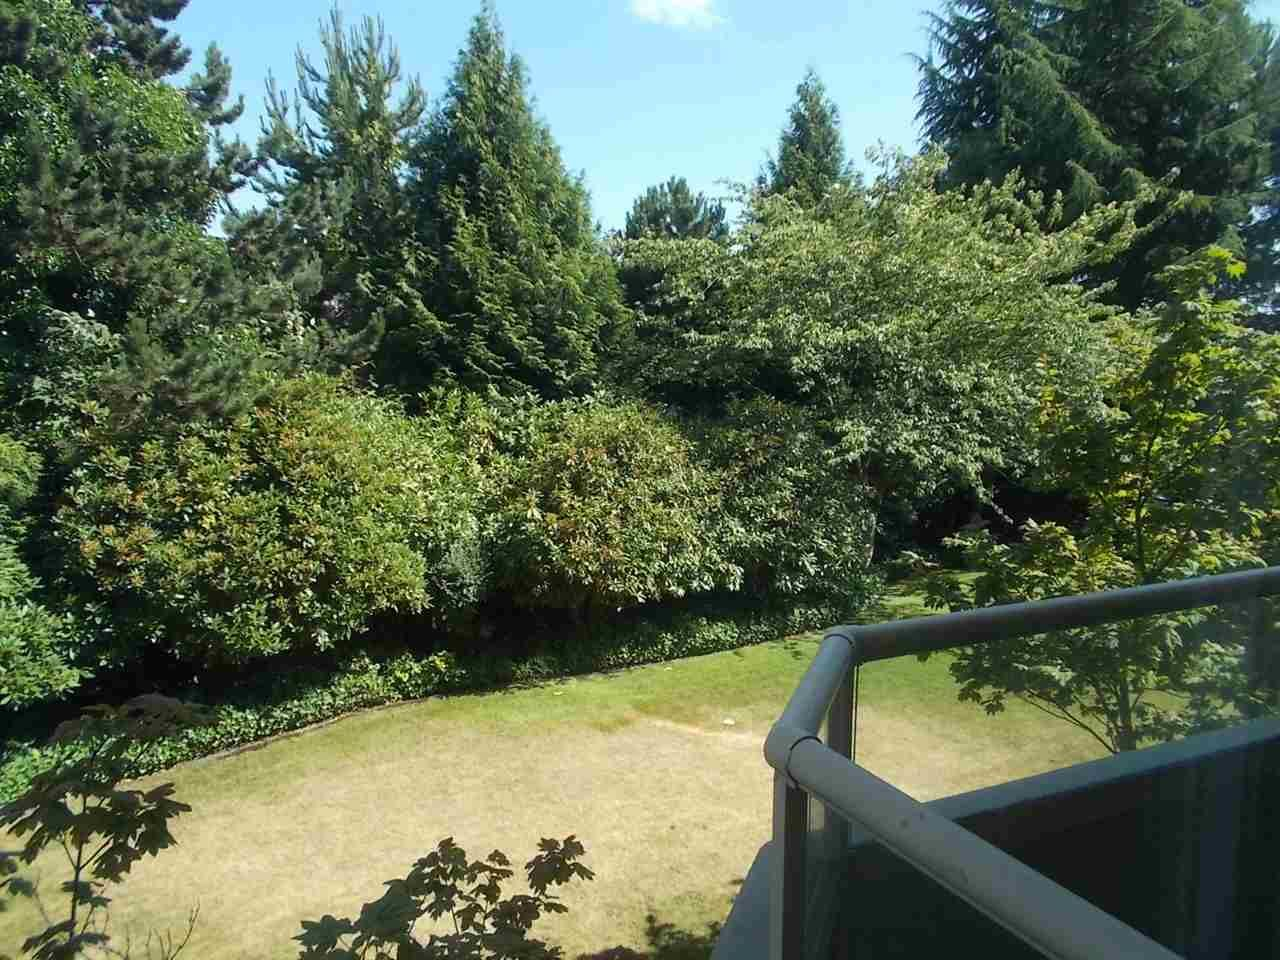 Photo 14: Photos: 301 728 FARROW STREET in Coquitlam: Coquitlam West Condo for sale : MLS®# R2005840